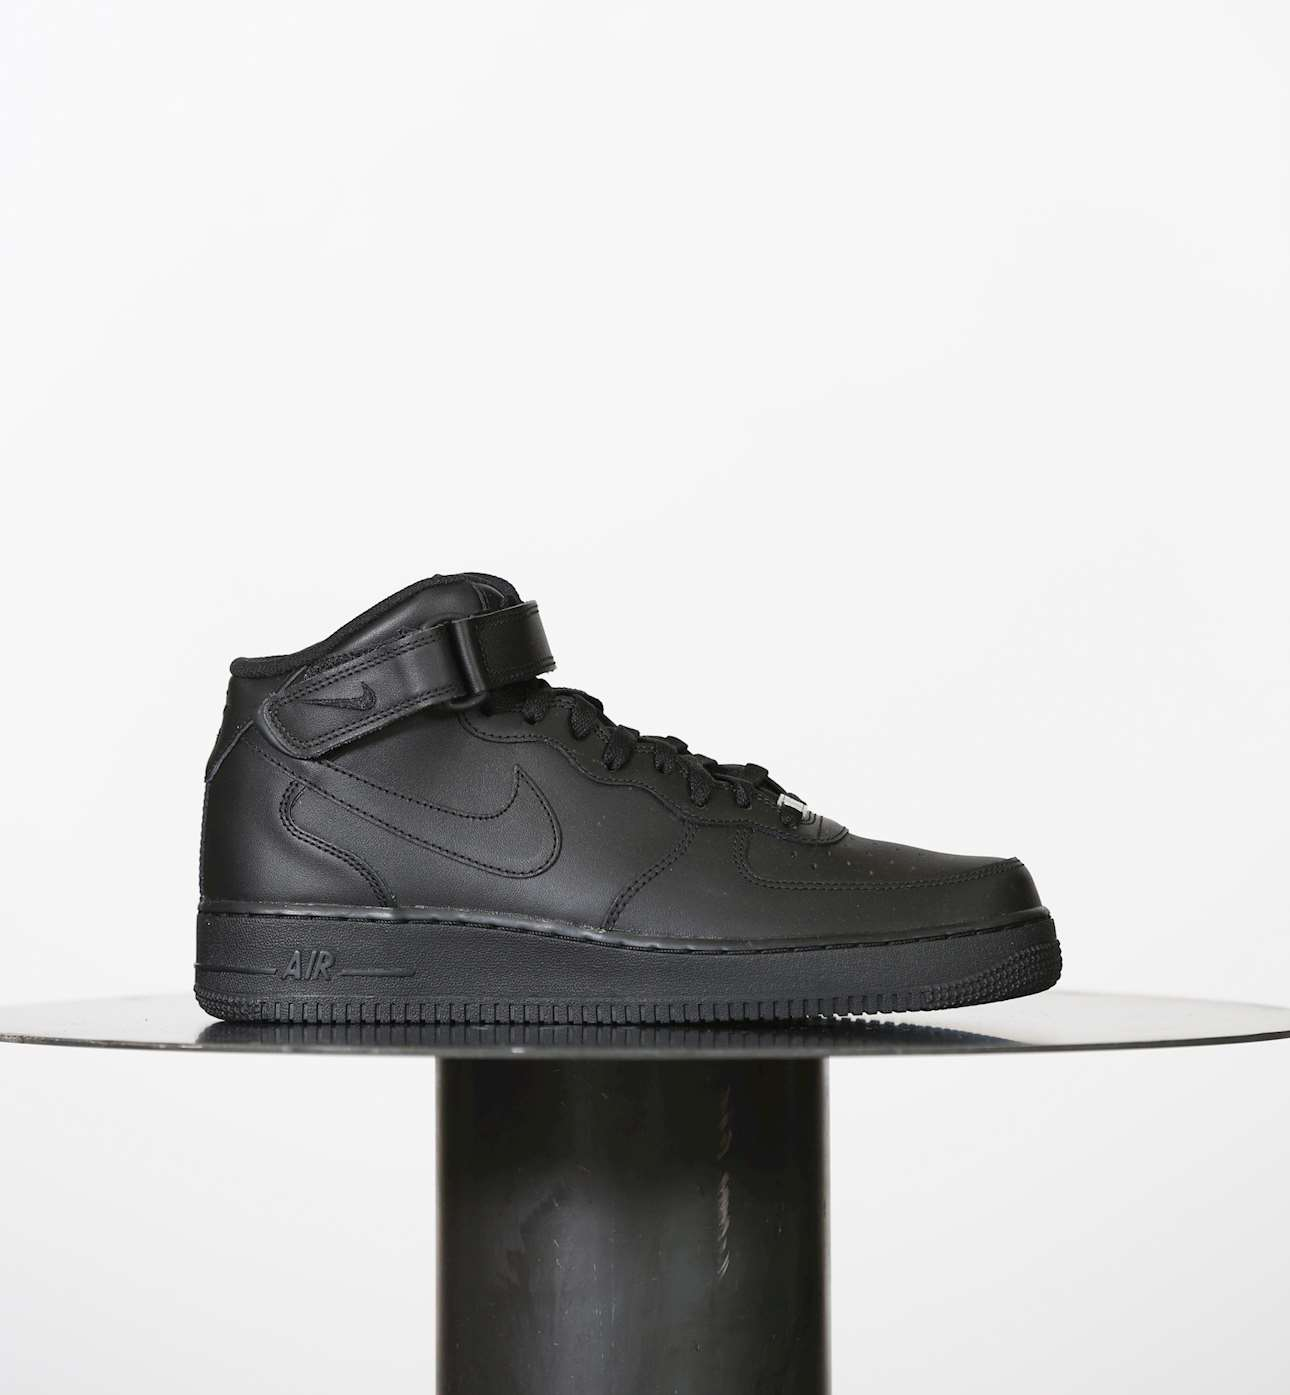 air force 1 cuoio